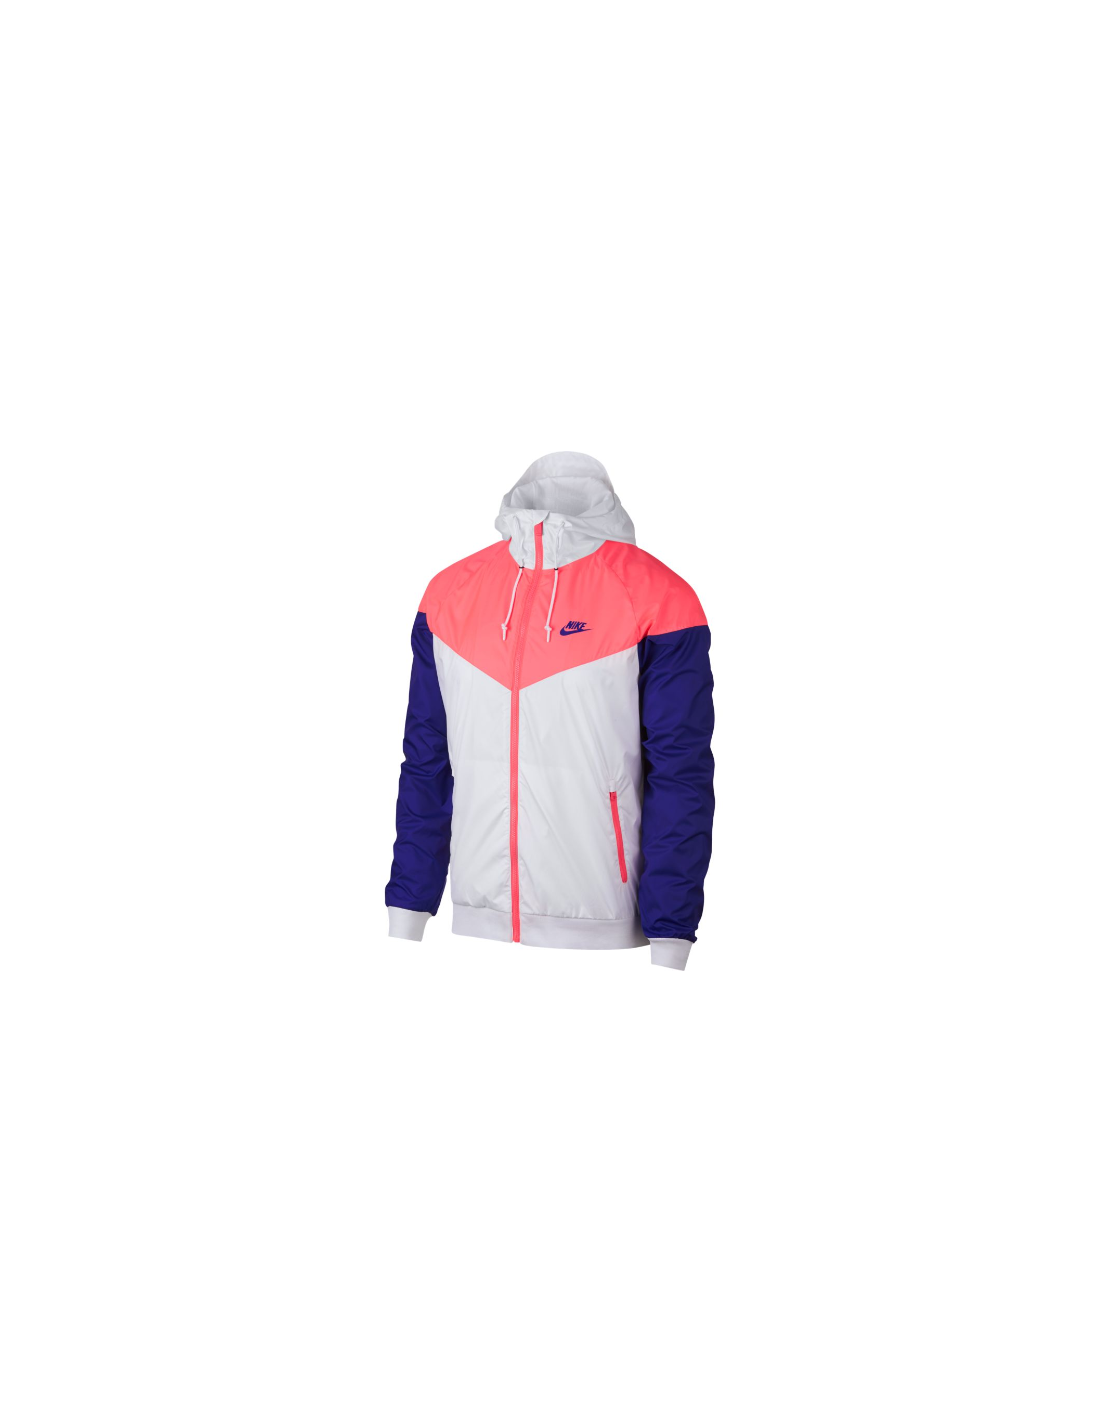 new product d9932 7277a veste homme Nike rose Mens nike sportswear windrunner jacket 727324-104